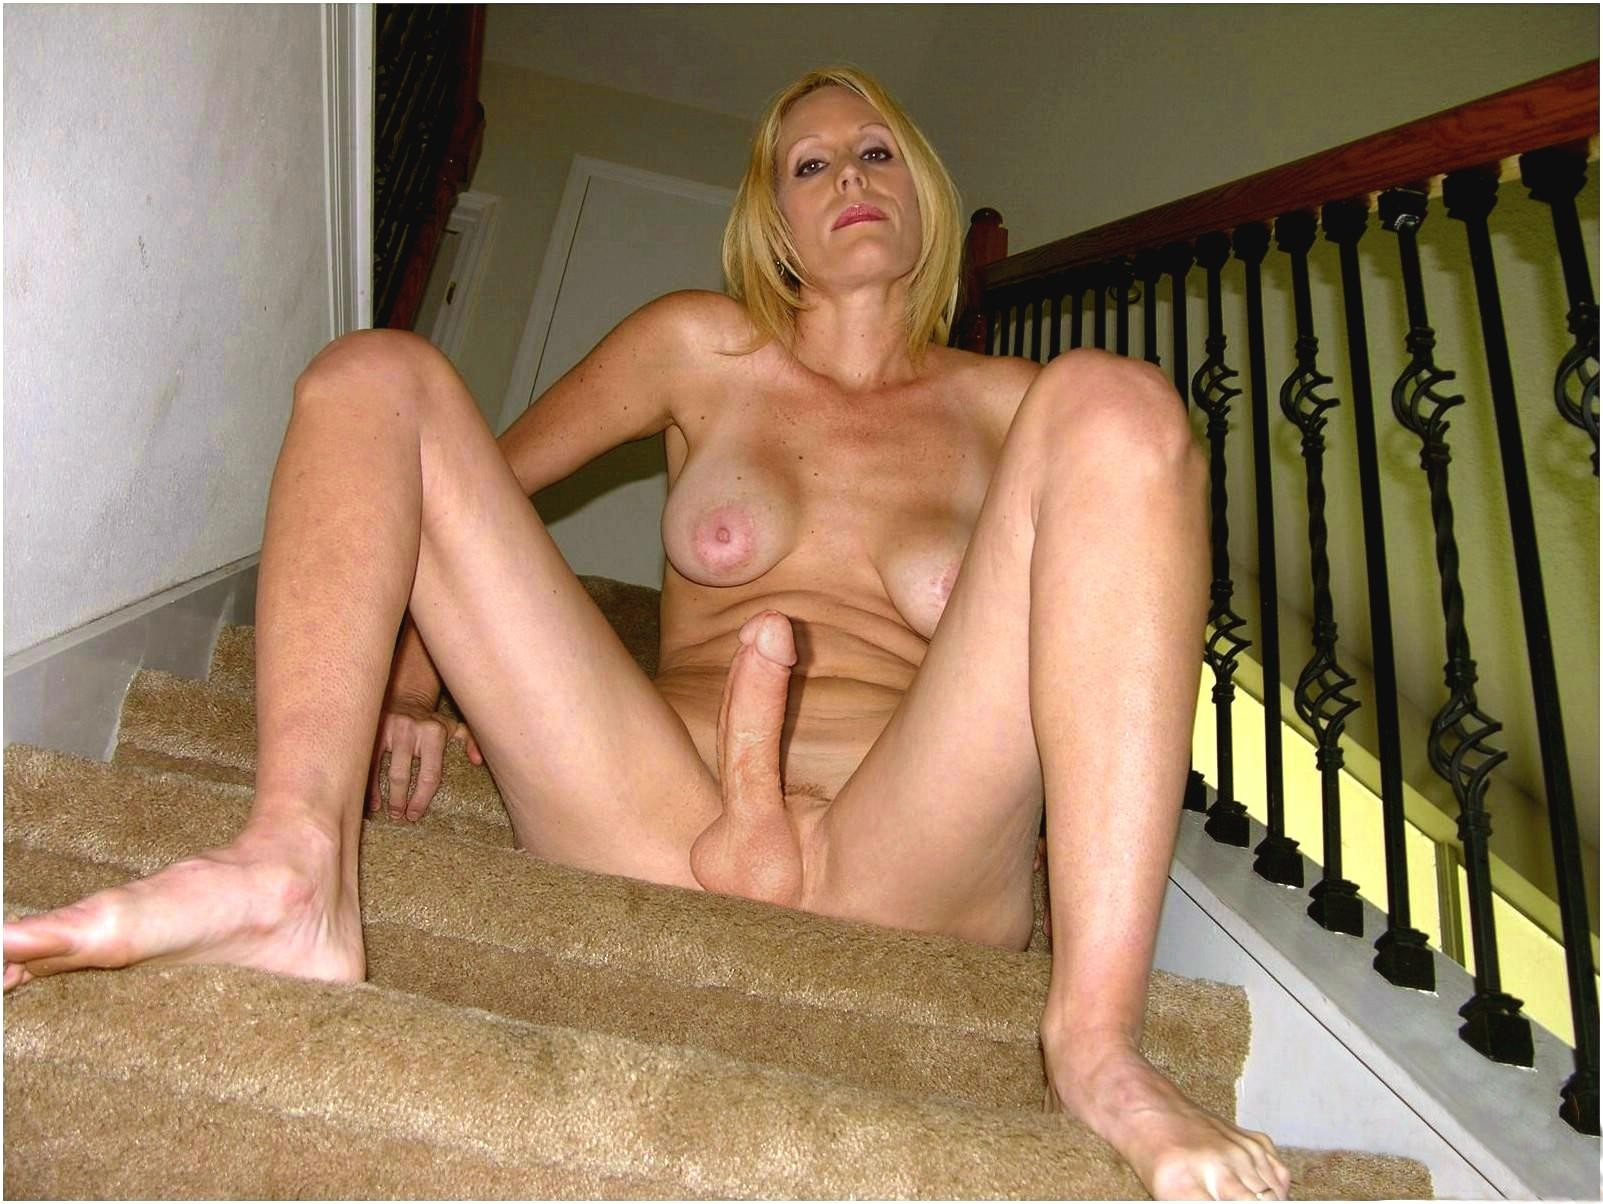 big cock mature woman - tonight sex!